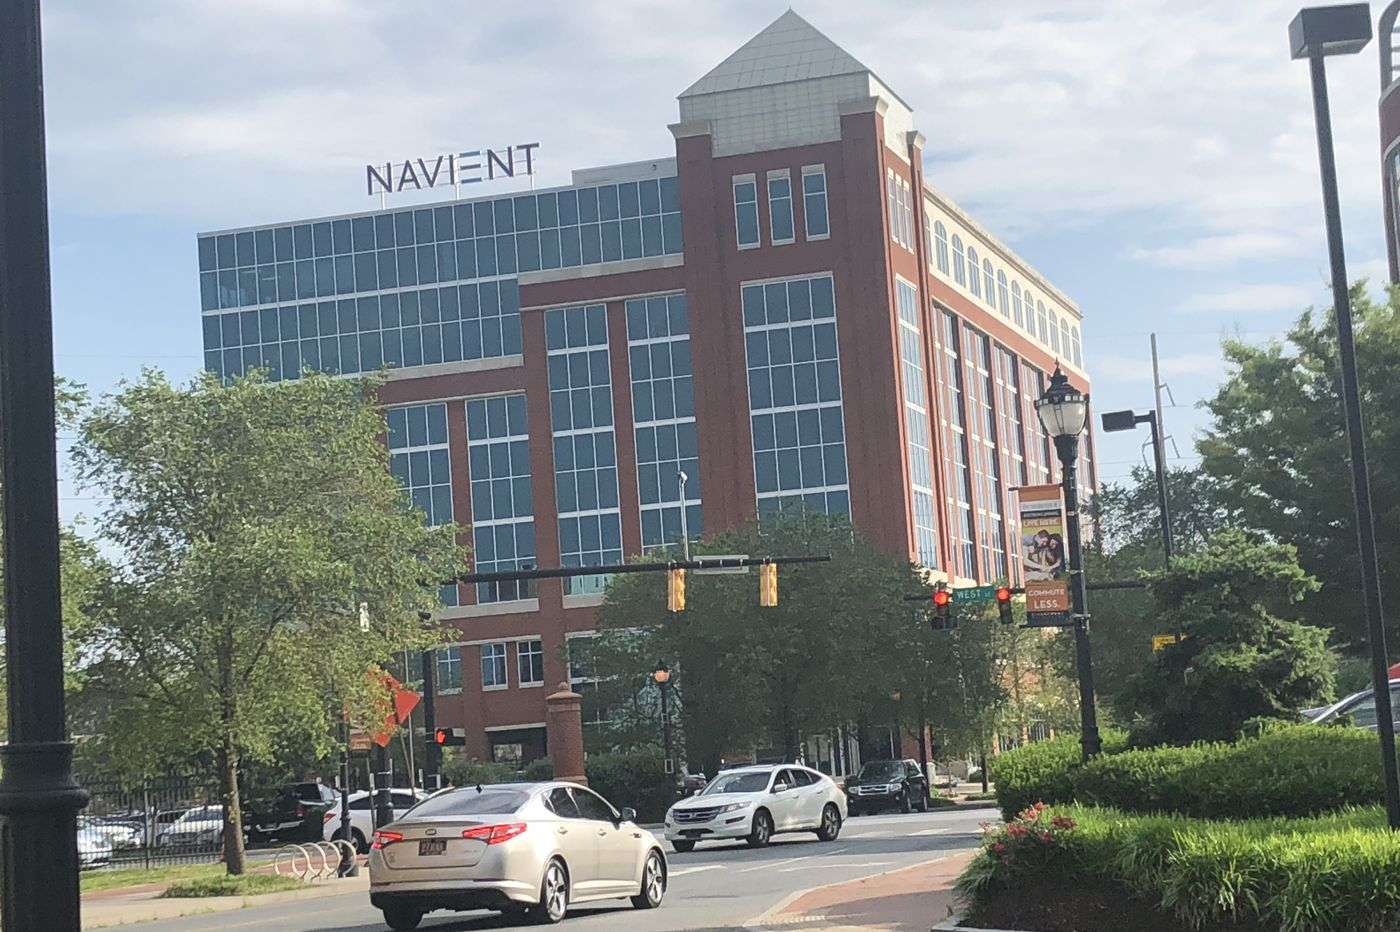 Navient appoints two new board members after battle with activist hedge fund Canyon Capital